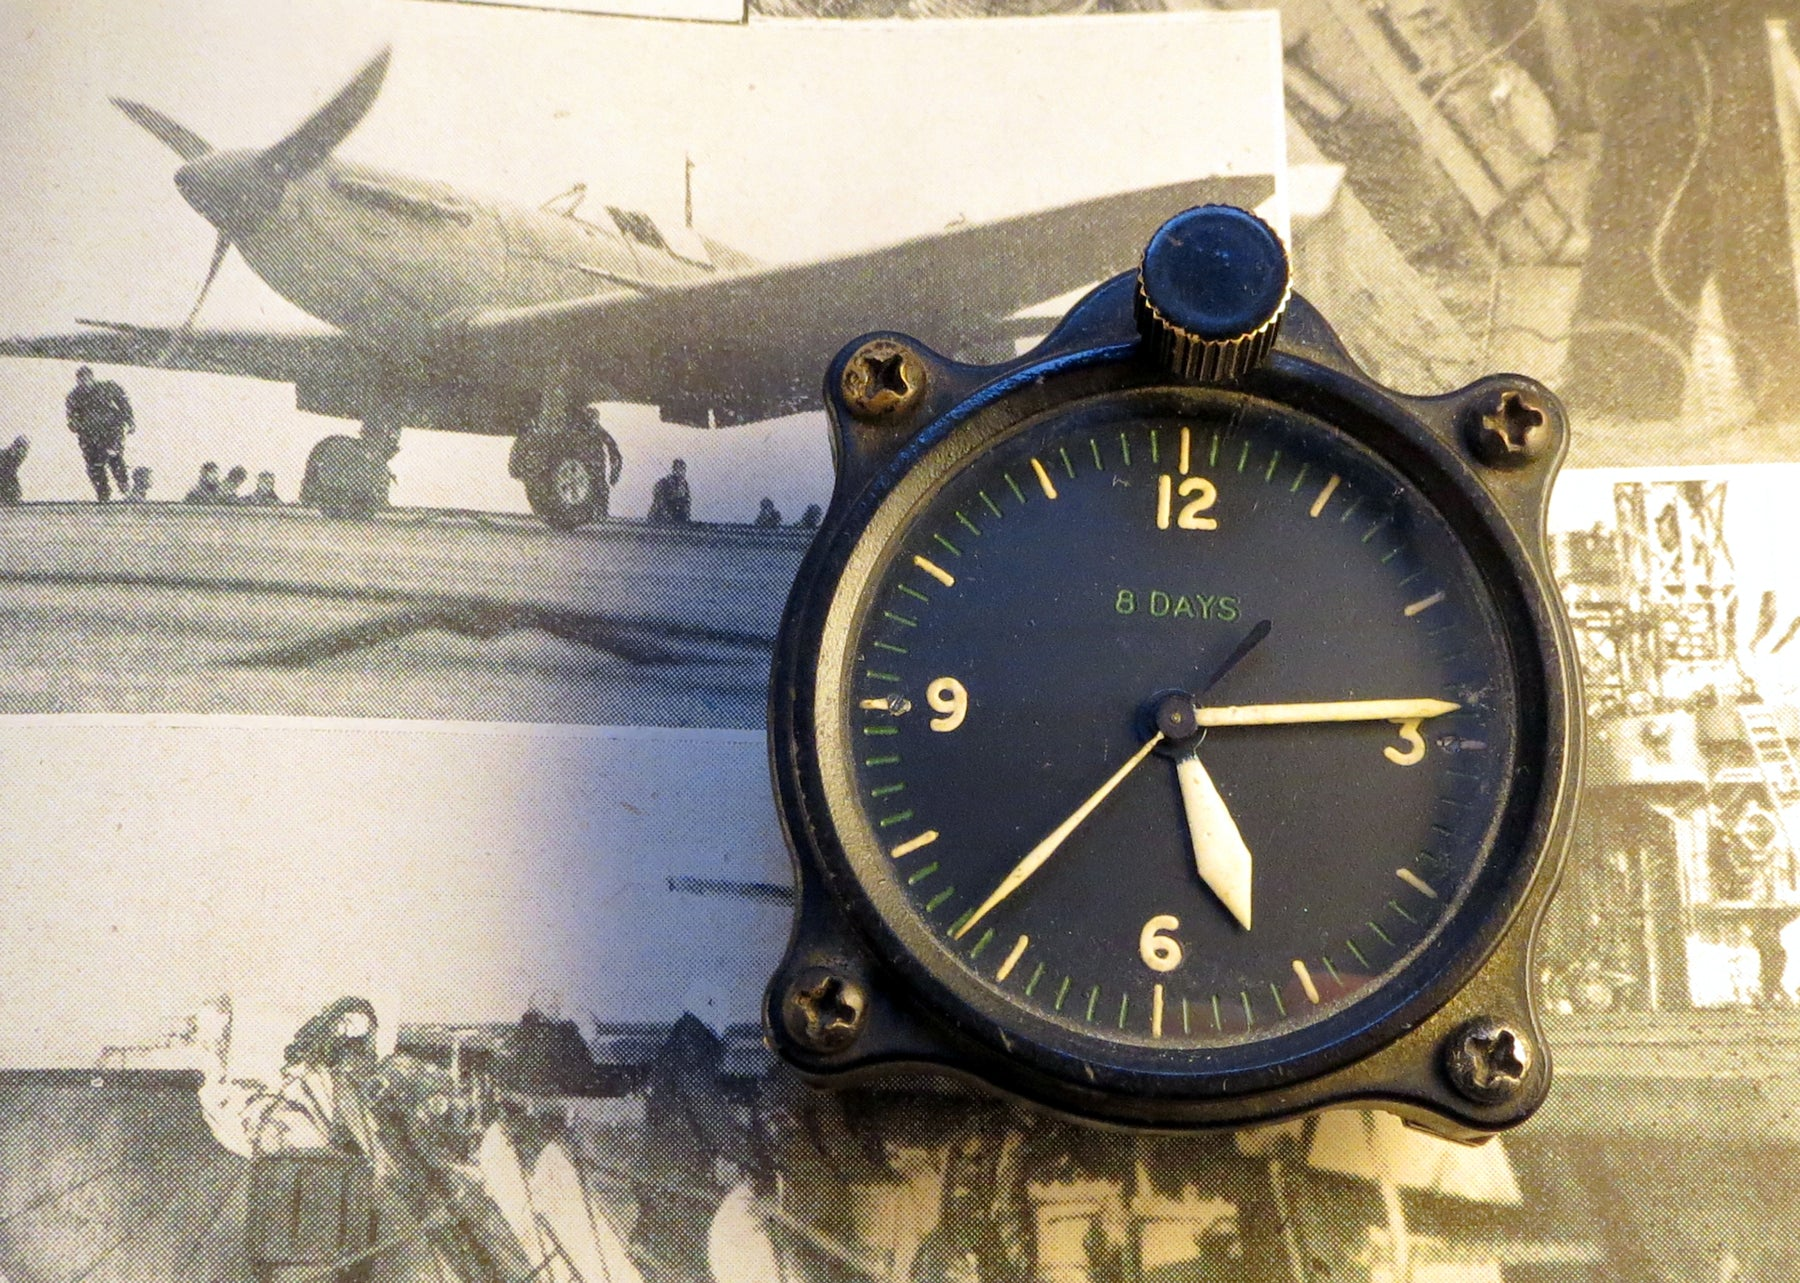 WWII 1941 8-Day cockpit clock, with Jaeger LeCoultre movement, most likely from either an RAF Spitfire or Hurricane.